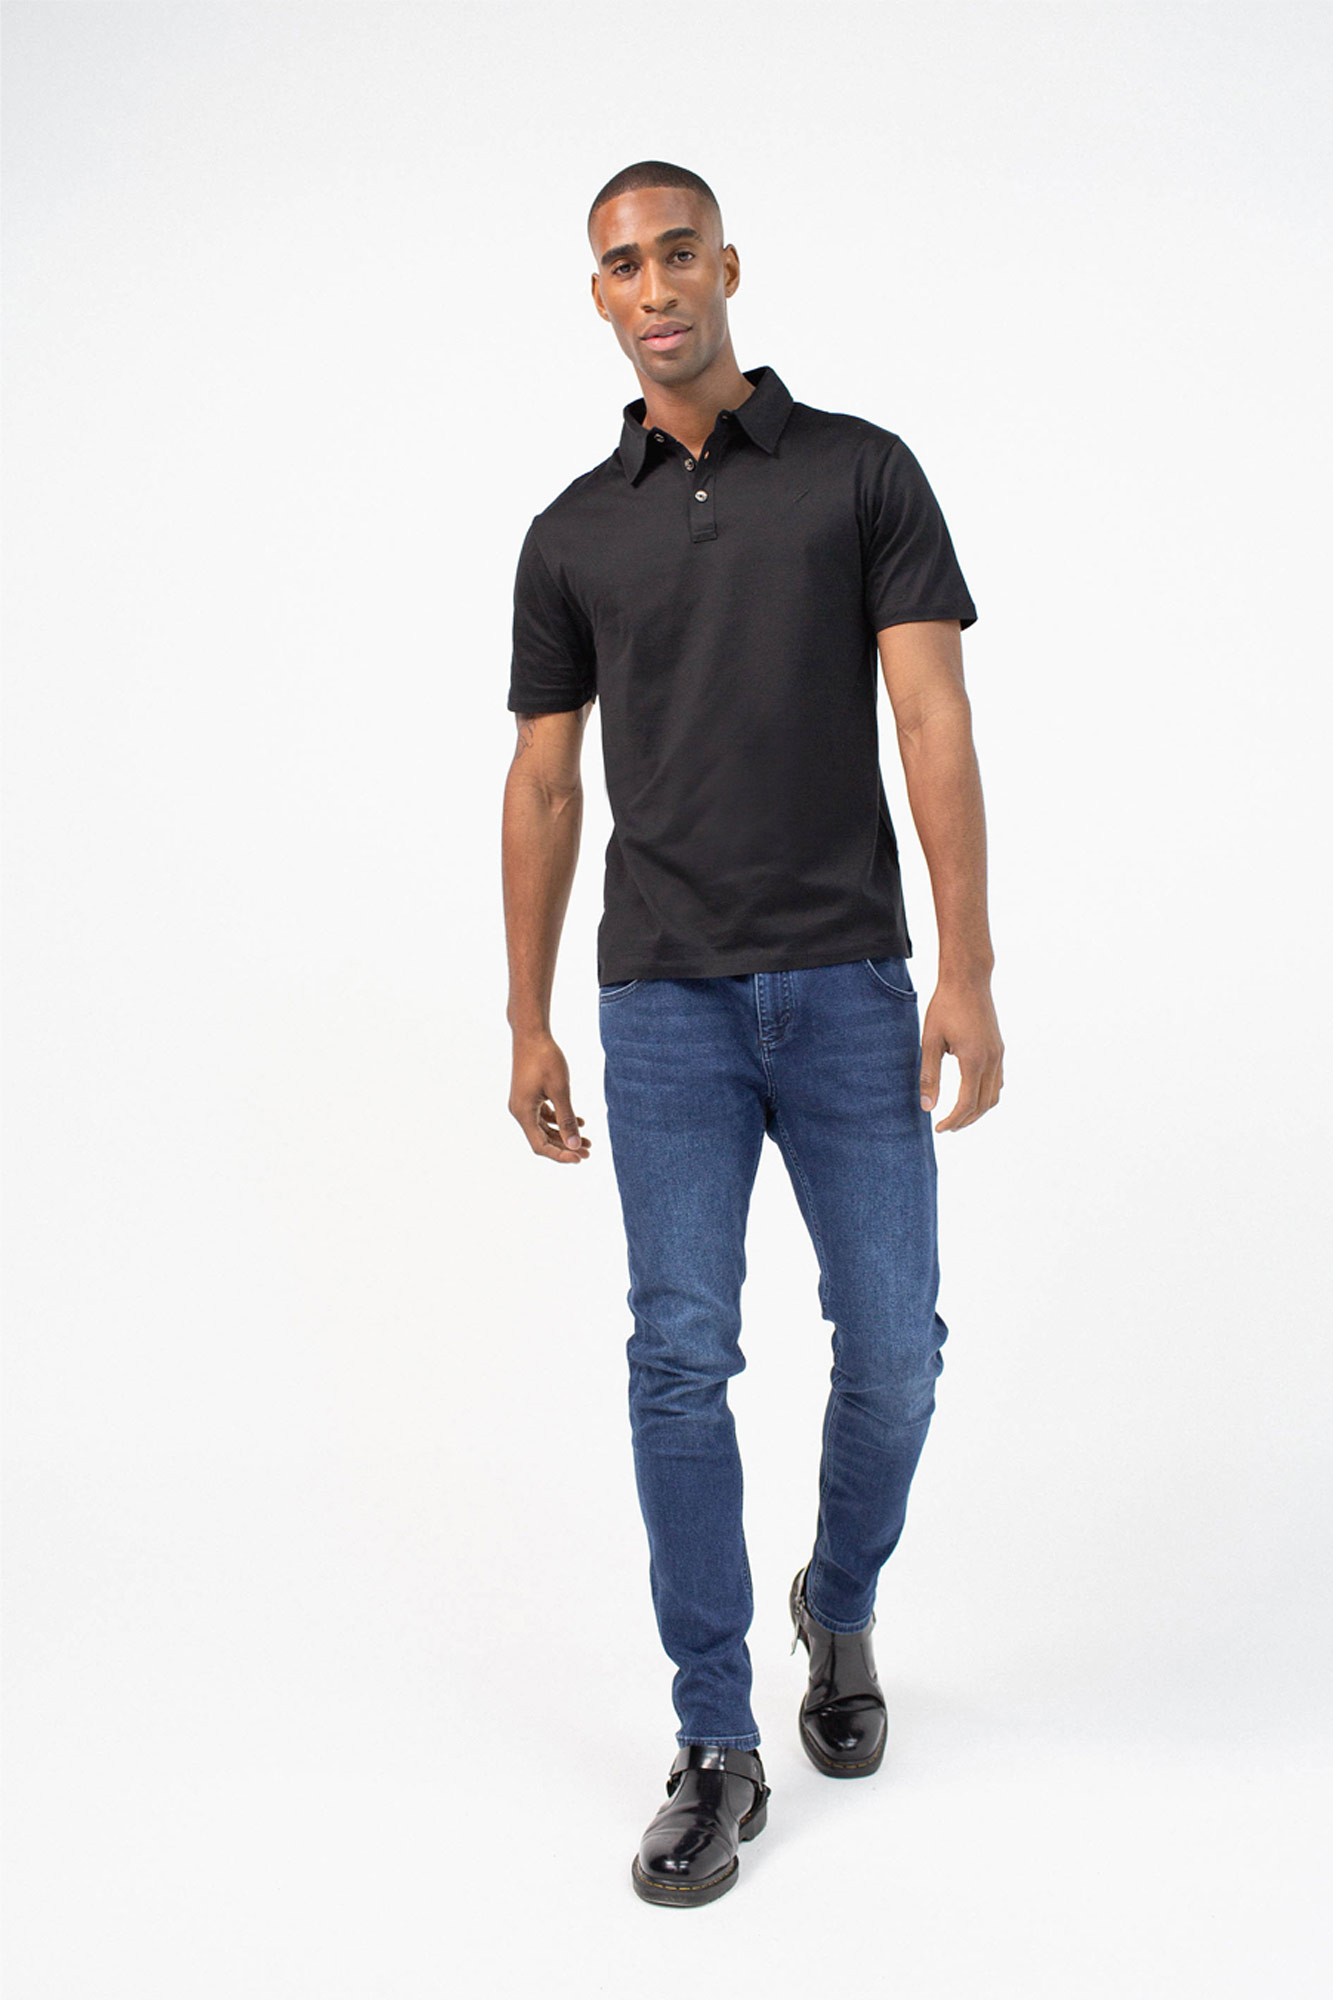 BenedictRaven Studio 051 1 - Monaco Polo Shirt Black